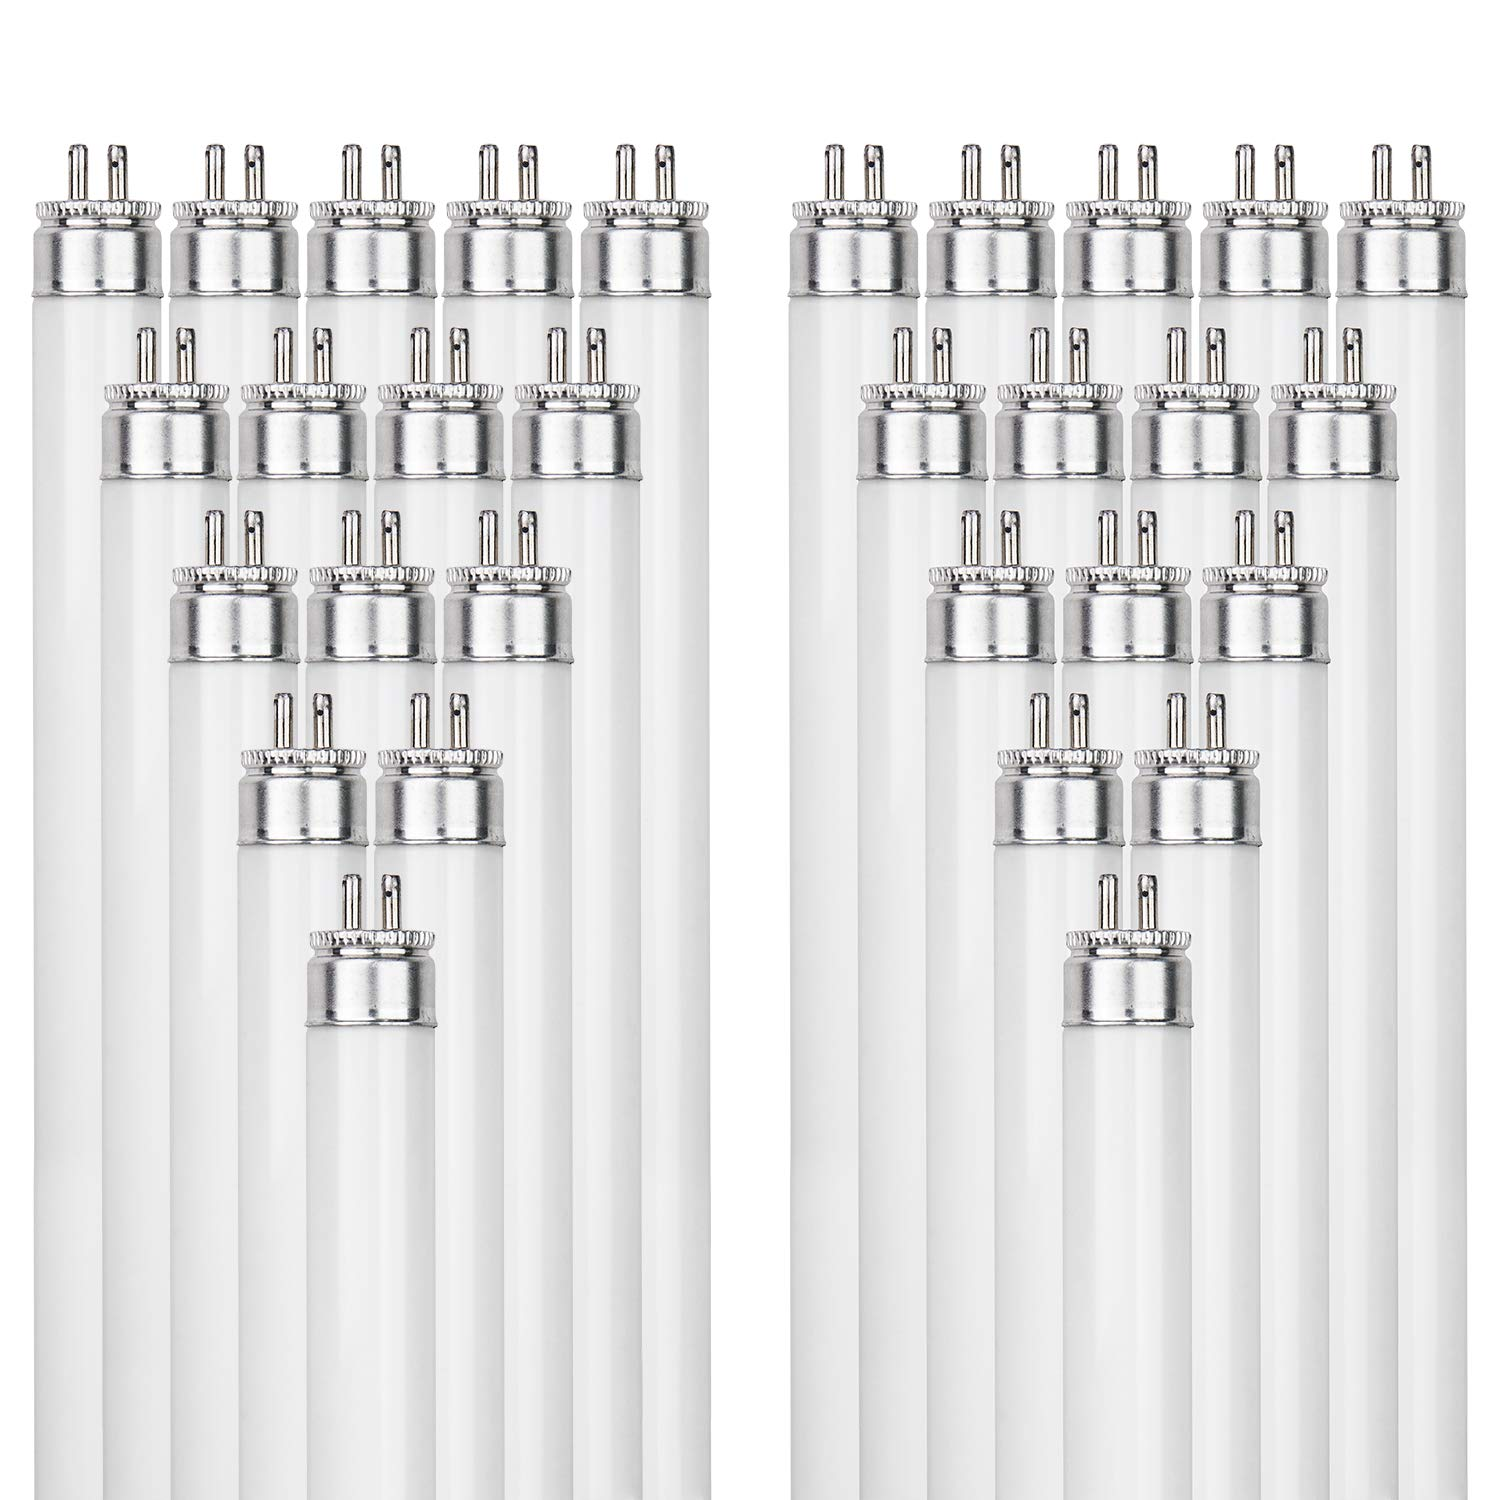 Sunlite F24T5/841/HO 24-Watt T5 Linear Fluorescent Light Bulb Mini Bi Pin Base, 4100K, 40-Pack